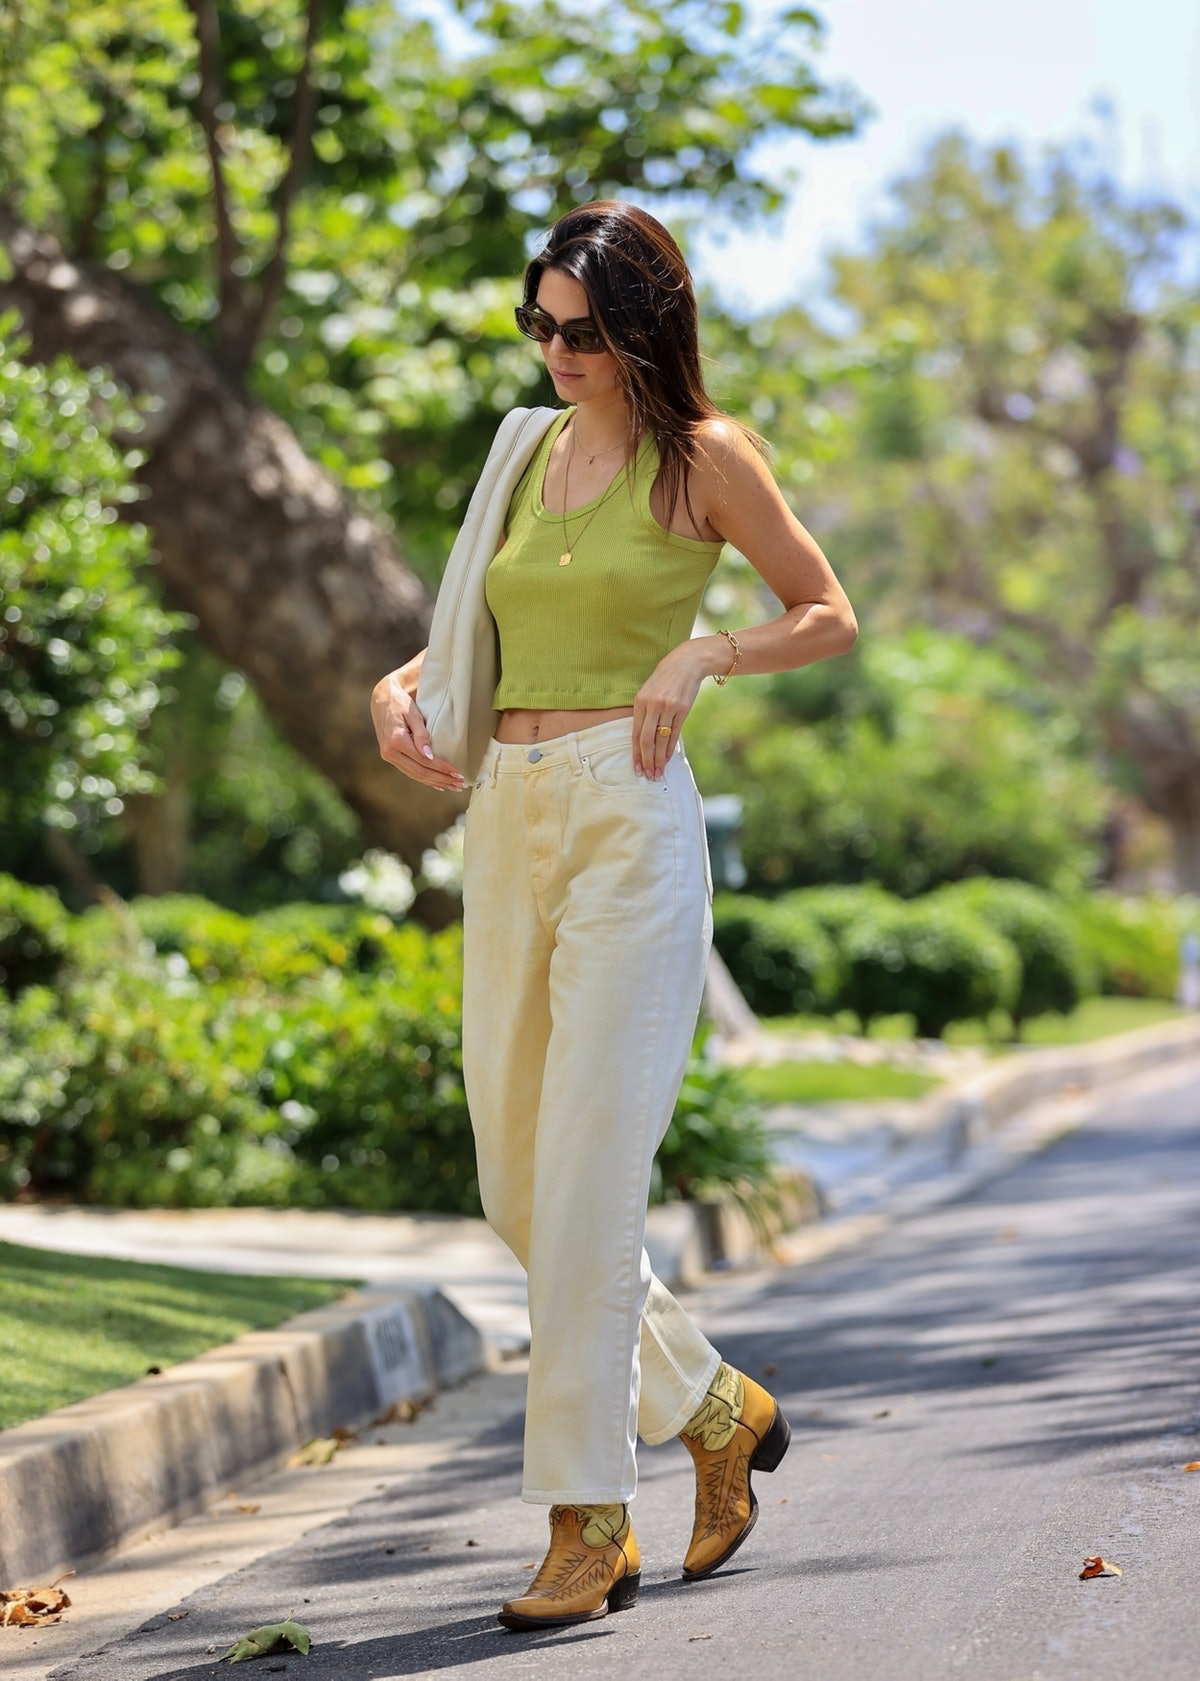 Kendall Jenner wears a green crop top, white jeans, and cowboy boots.